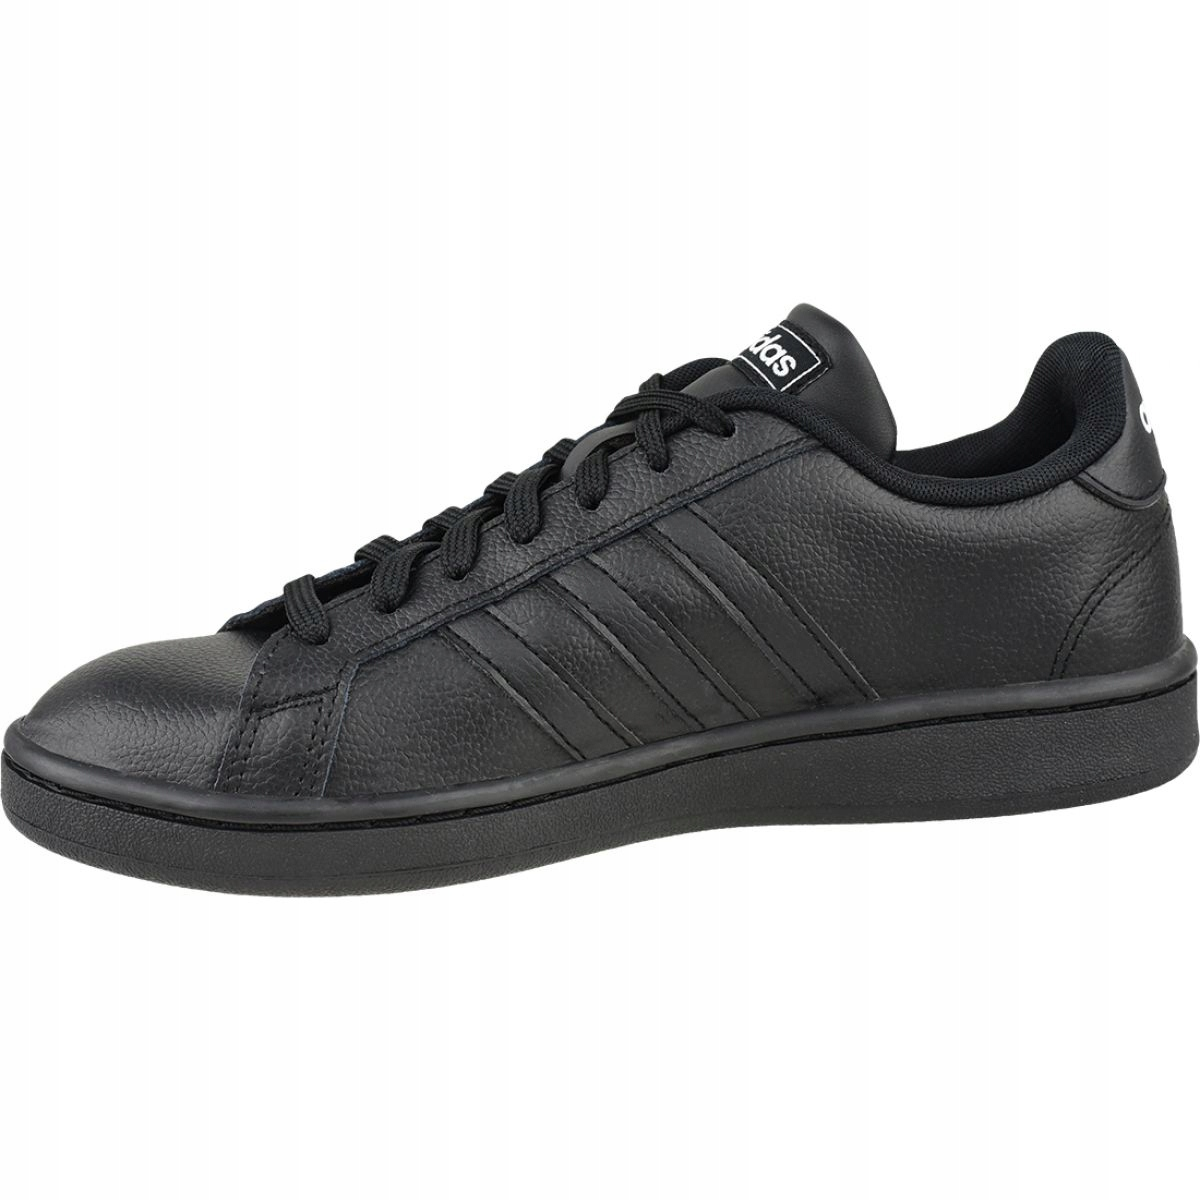 Adidas Grand Court M EE7890 shoes black